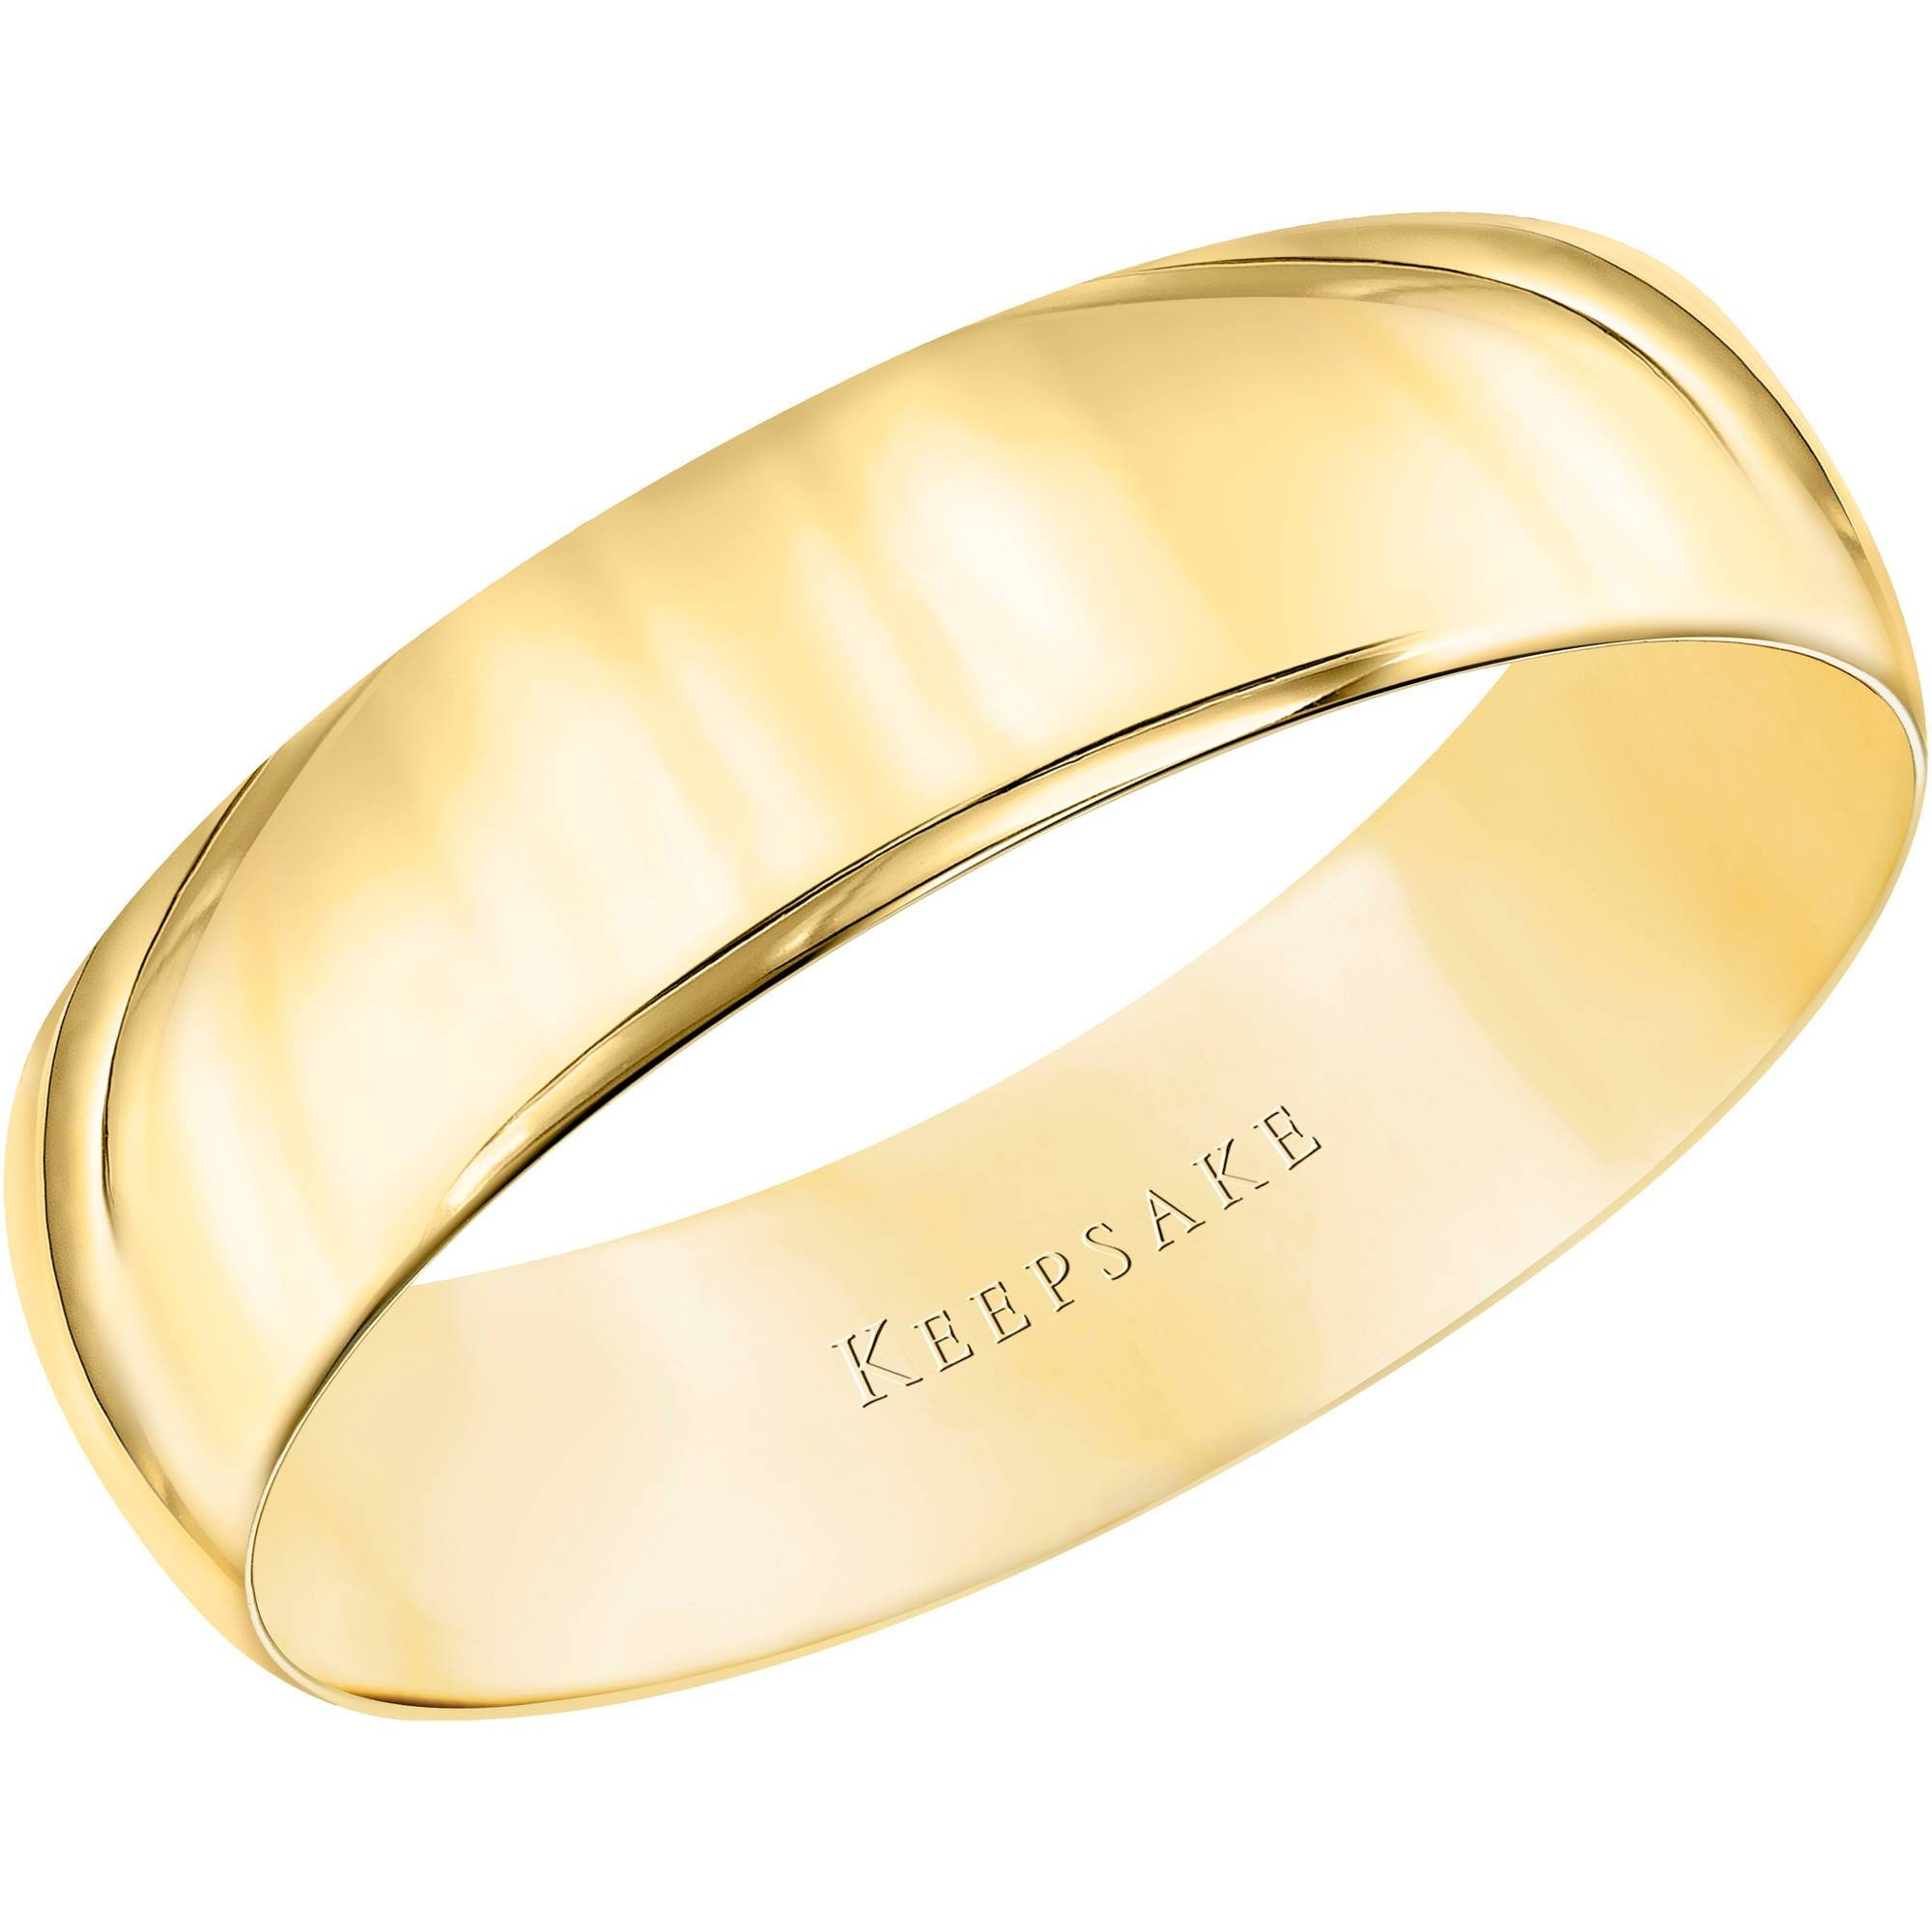 Keepsake 10Kt Yellow Gold Wedding Band With High Polish Finish With Regard To Walmart Womens Wedding Bands (View 6 of 15)